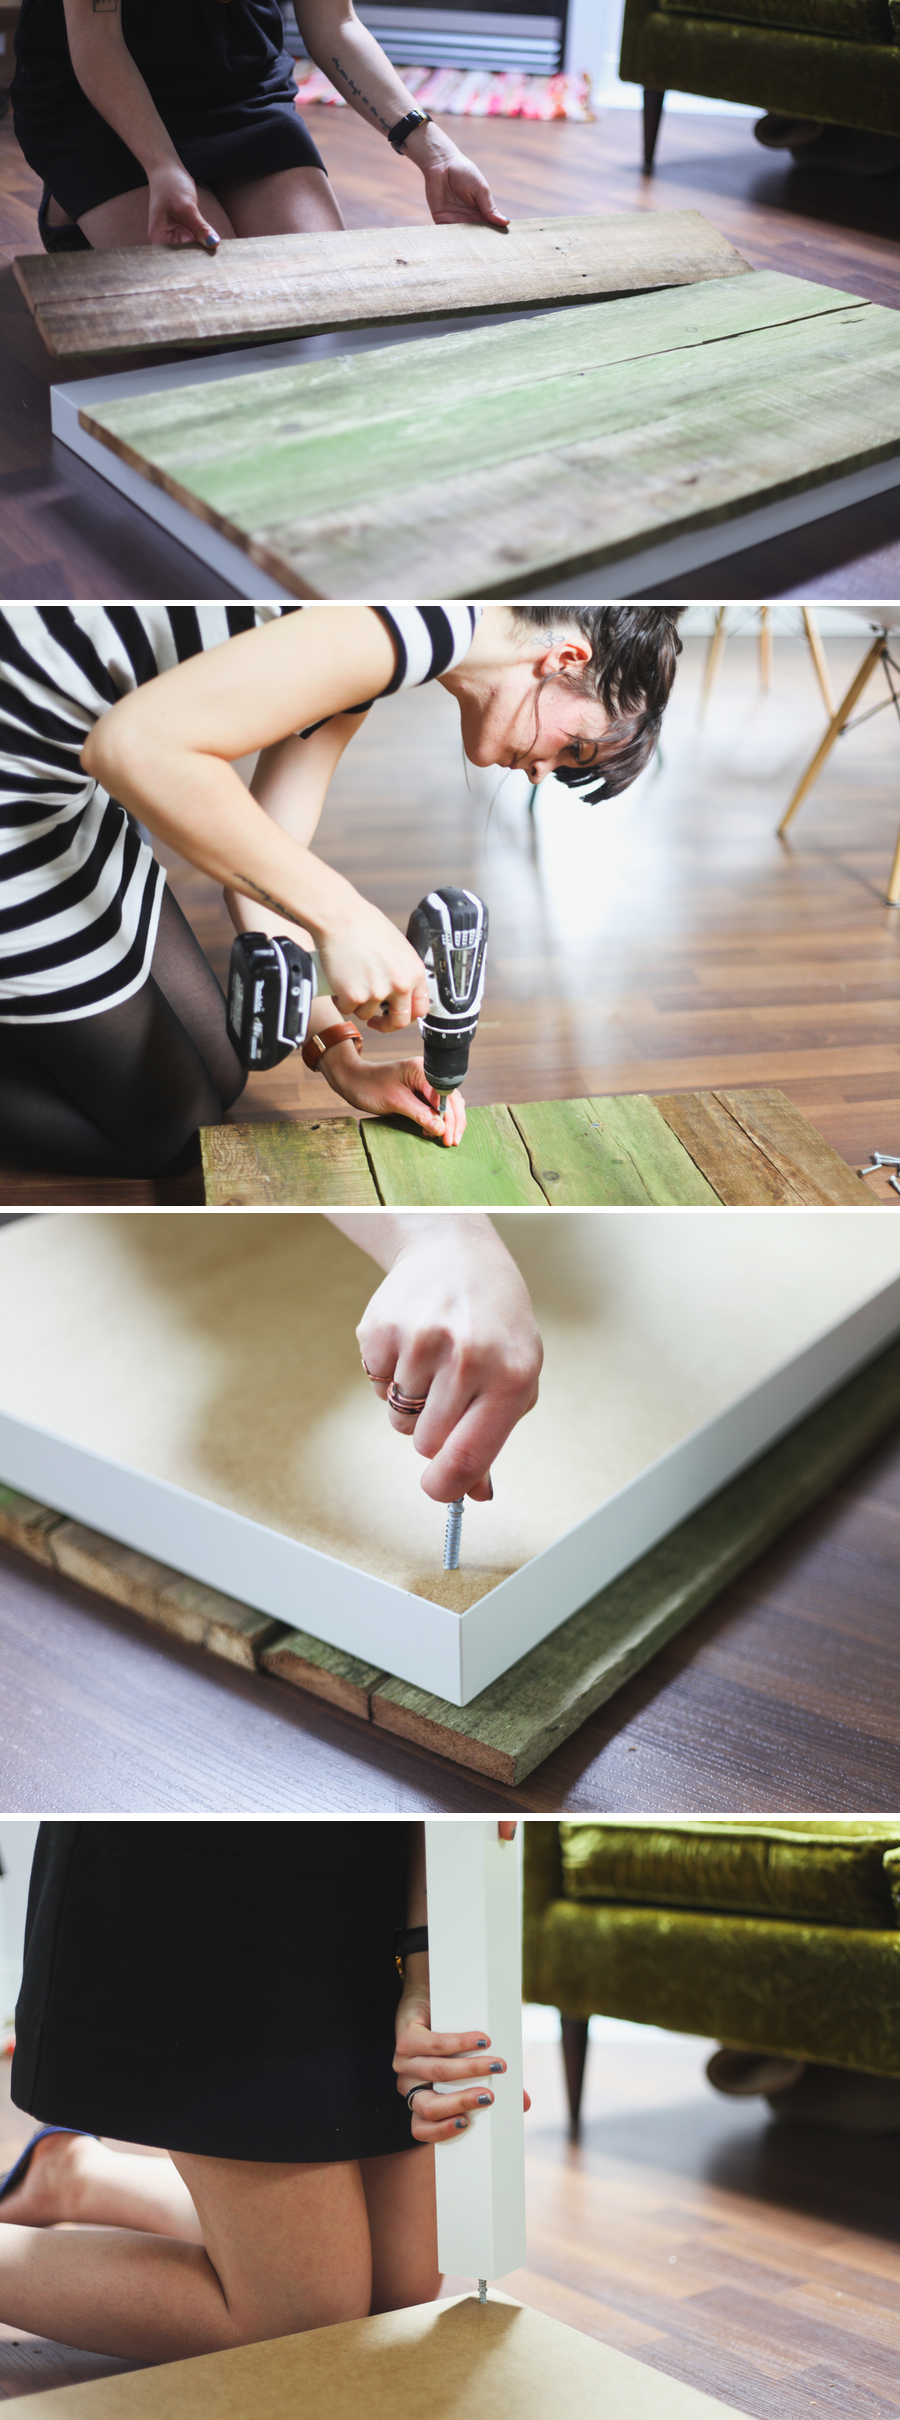 Ikea Hacks 3 Easy steps to Create your own Ikea Coffee Table